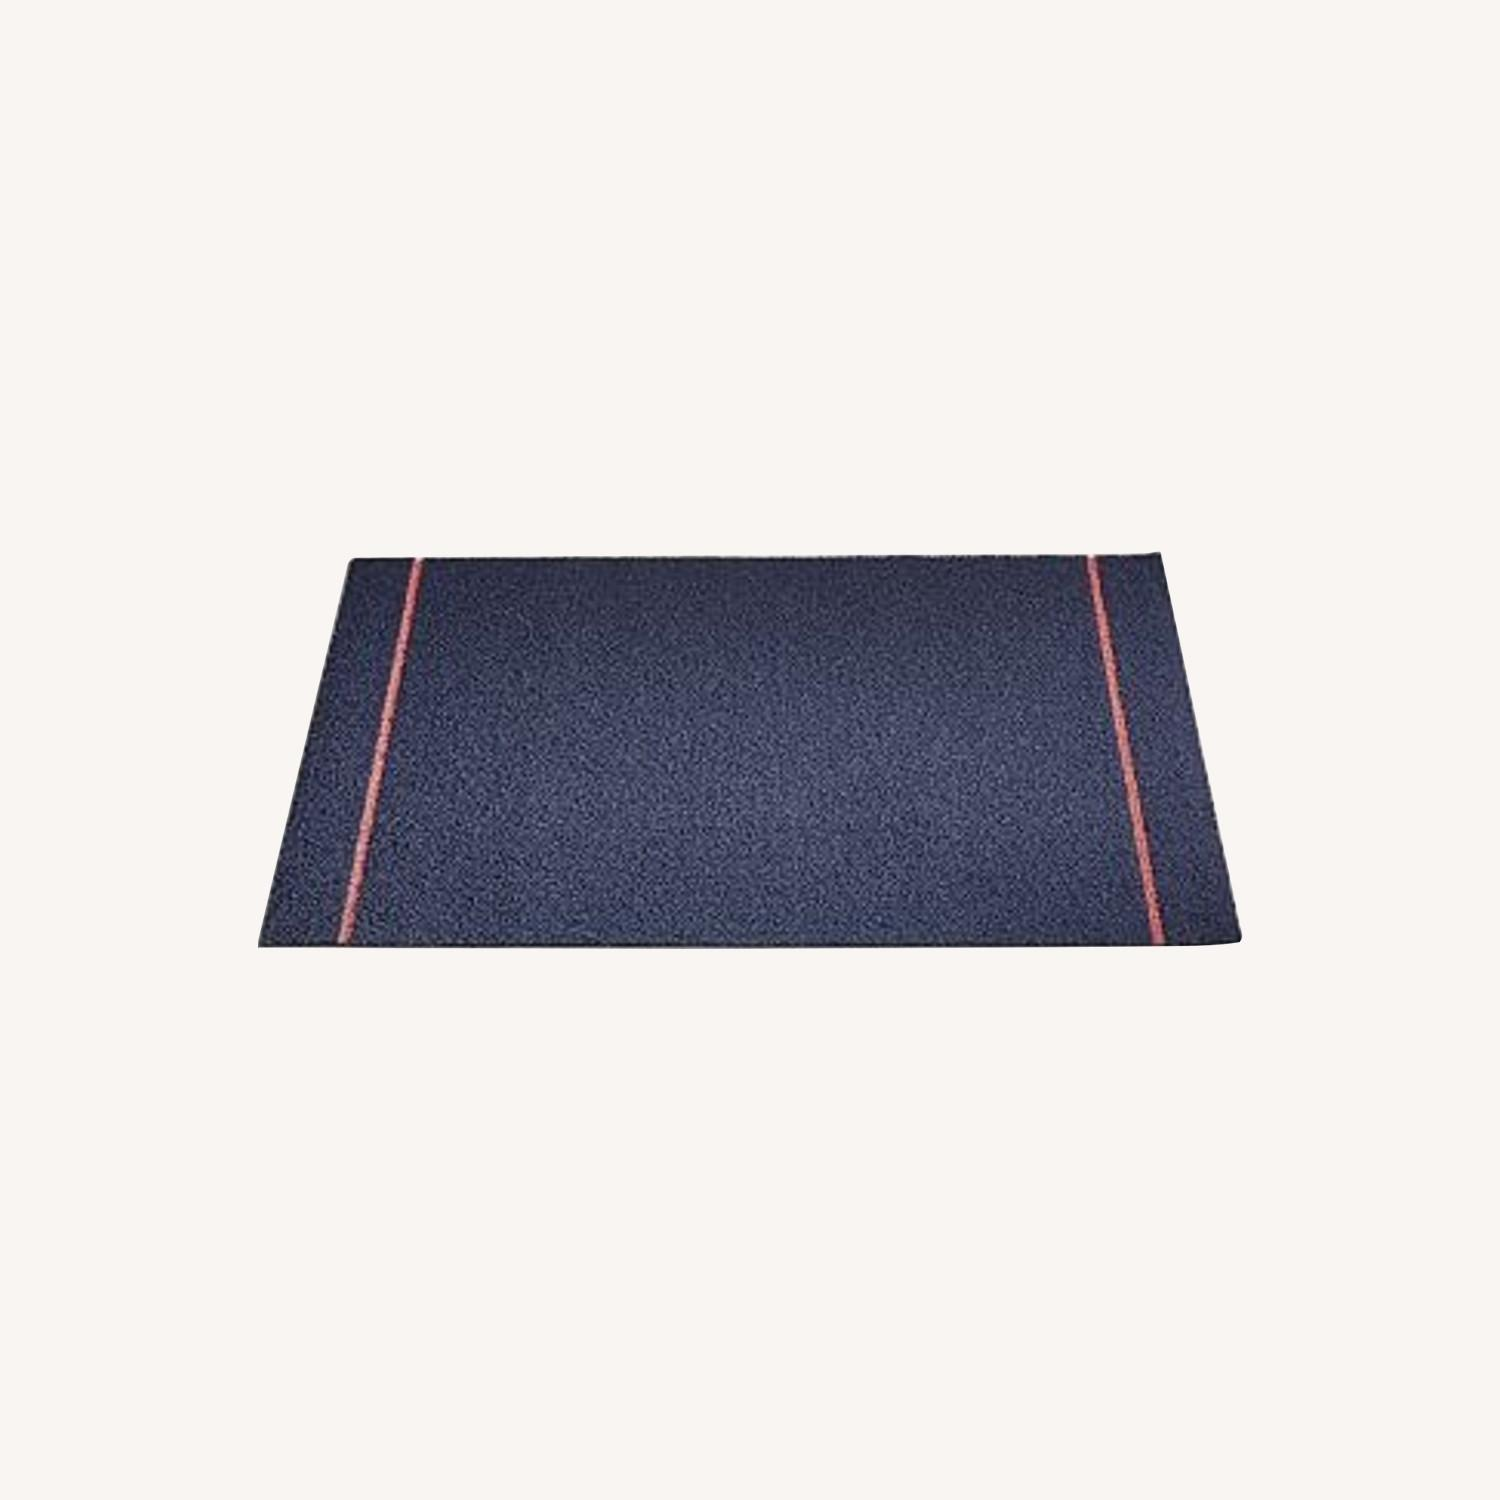 Chilewich Skinny Stripe Shag Mat, Navy Coral - image-0